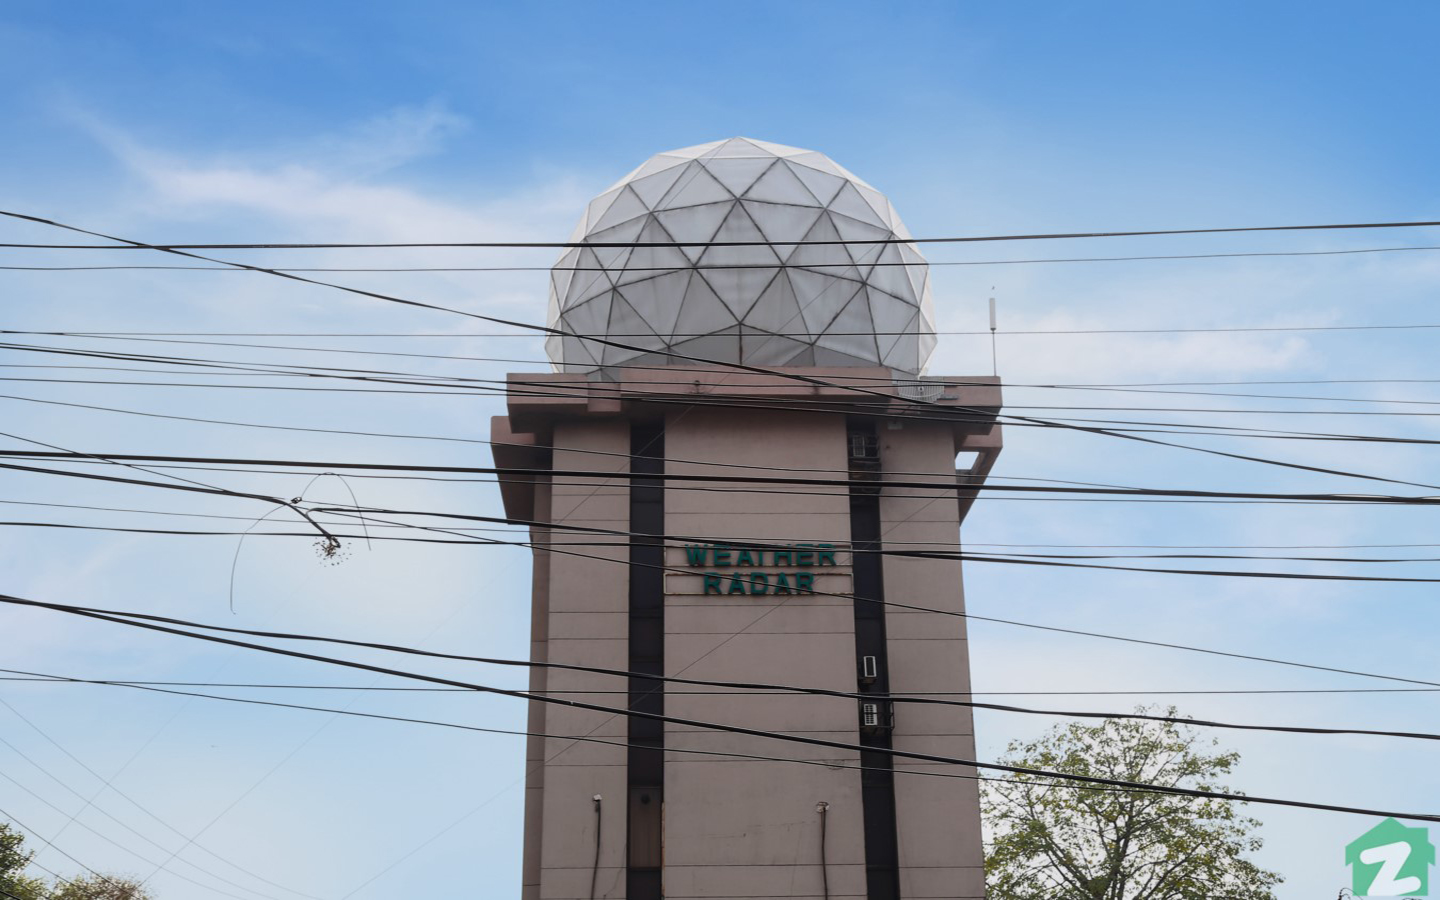 Met Station - Weather Radar is also located on Jail Road Lahore